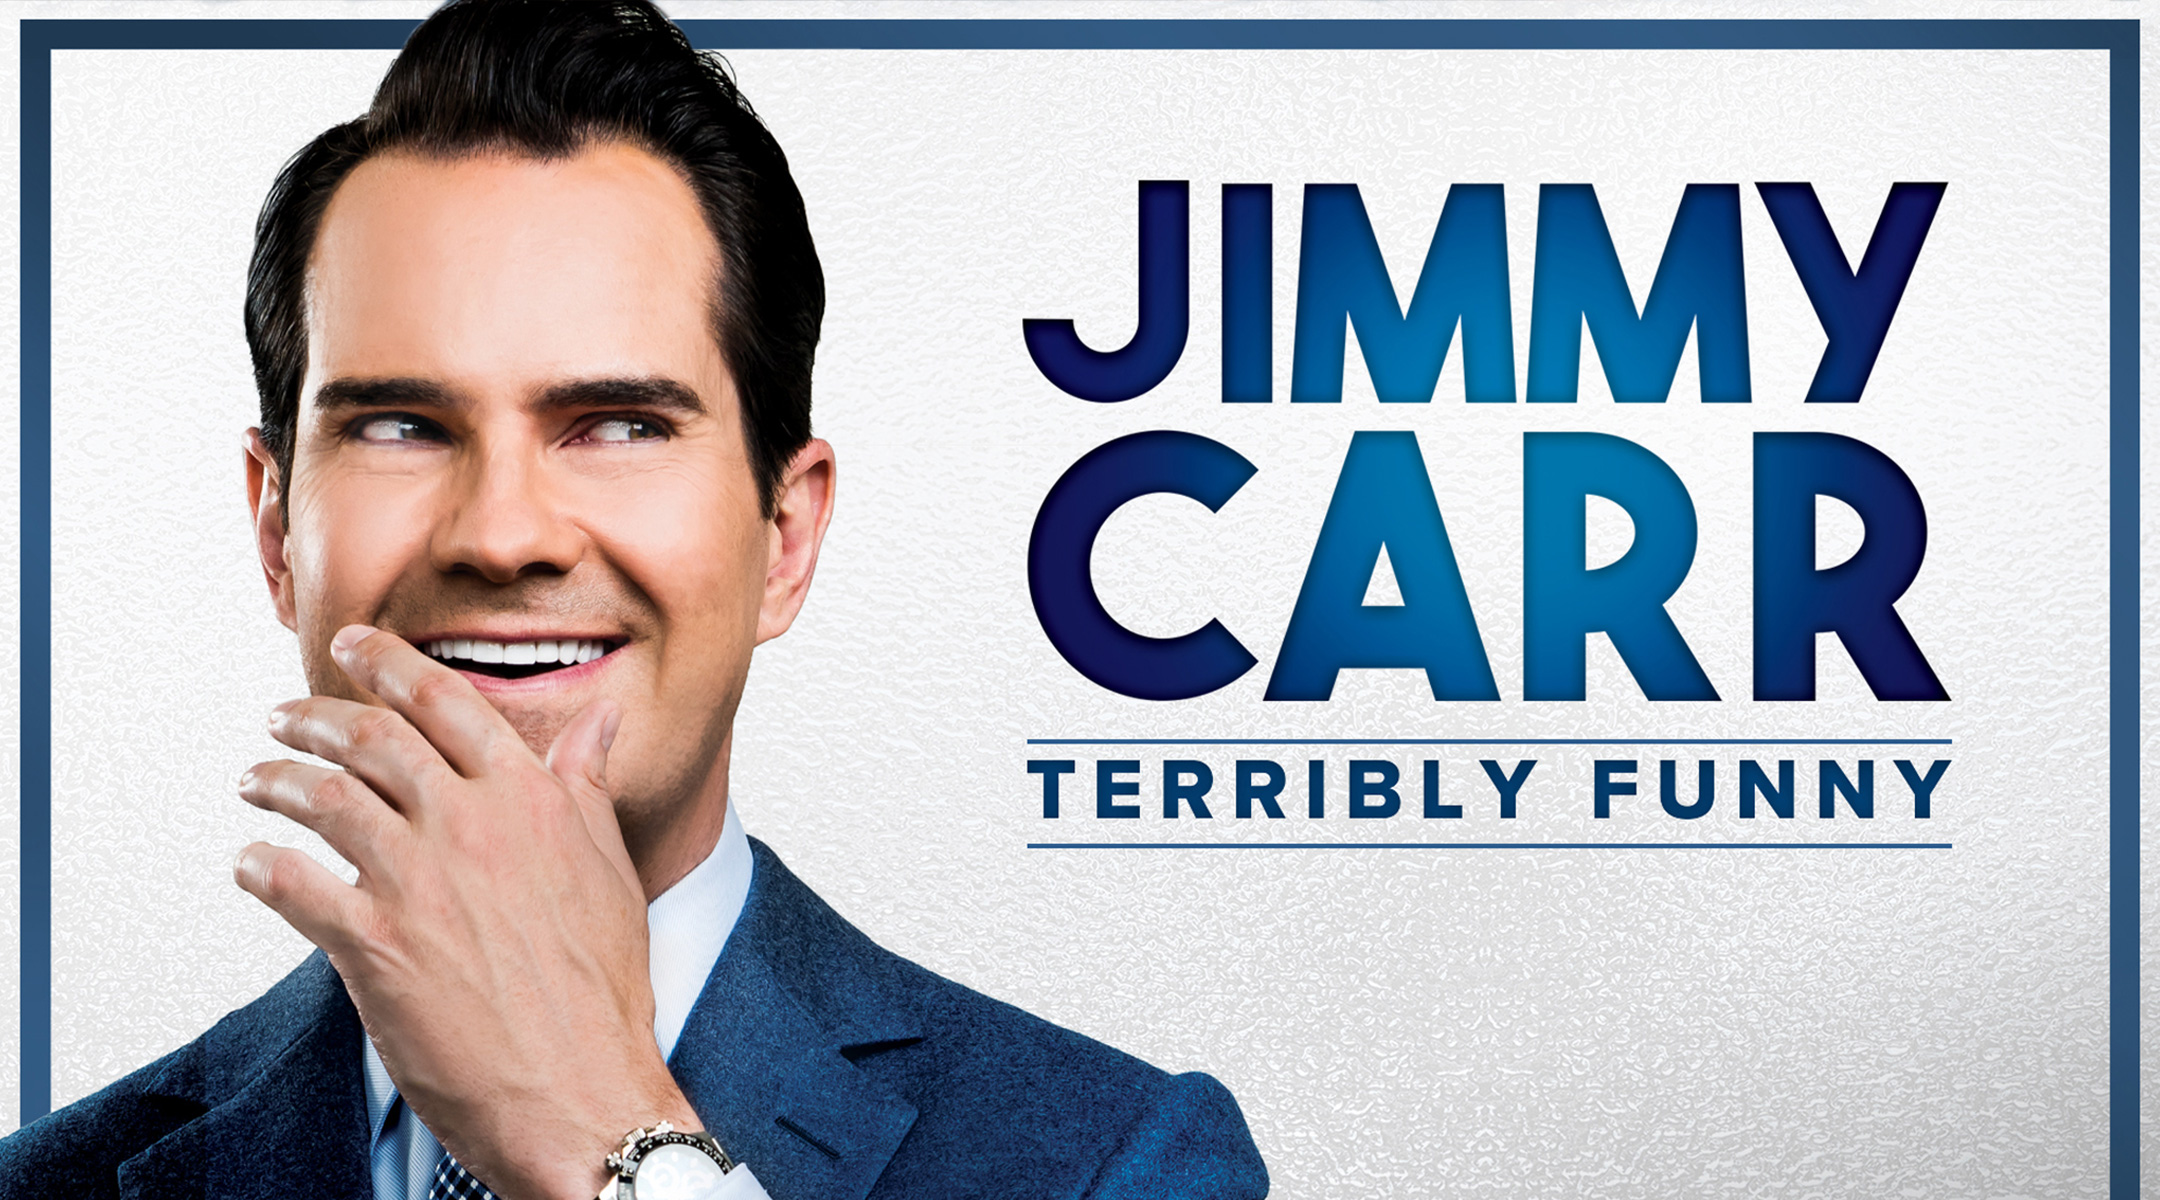 Jimmy Carr: Terribly Funny - Warwick 22nd